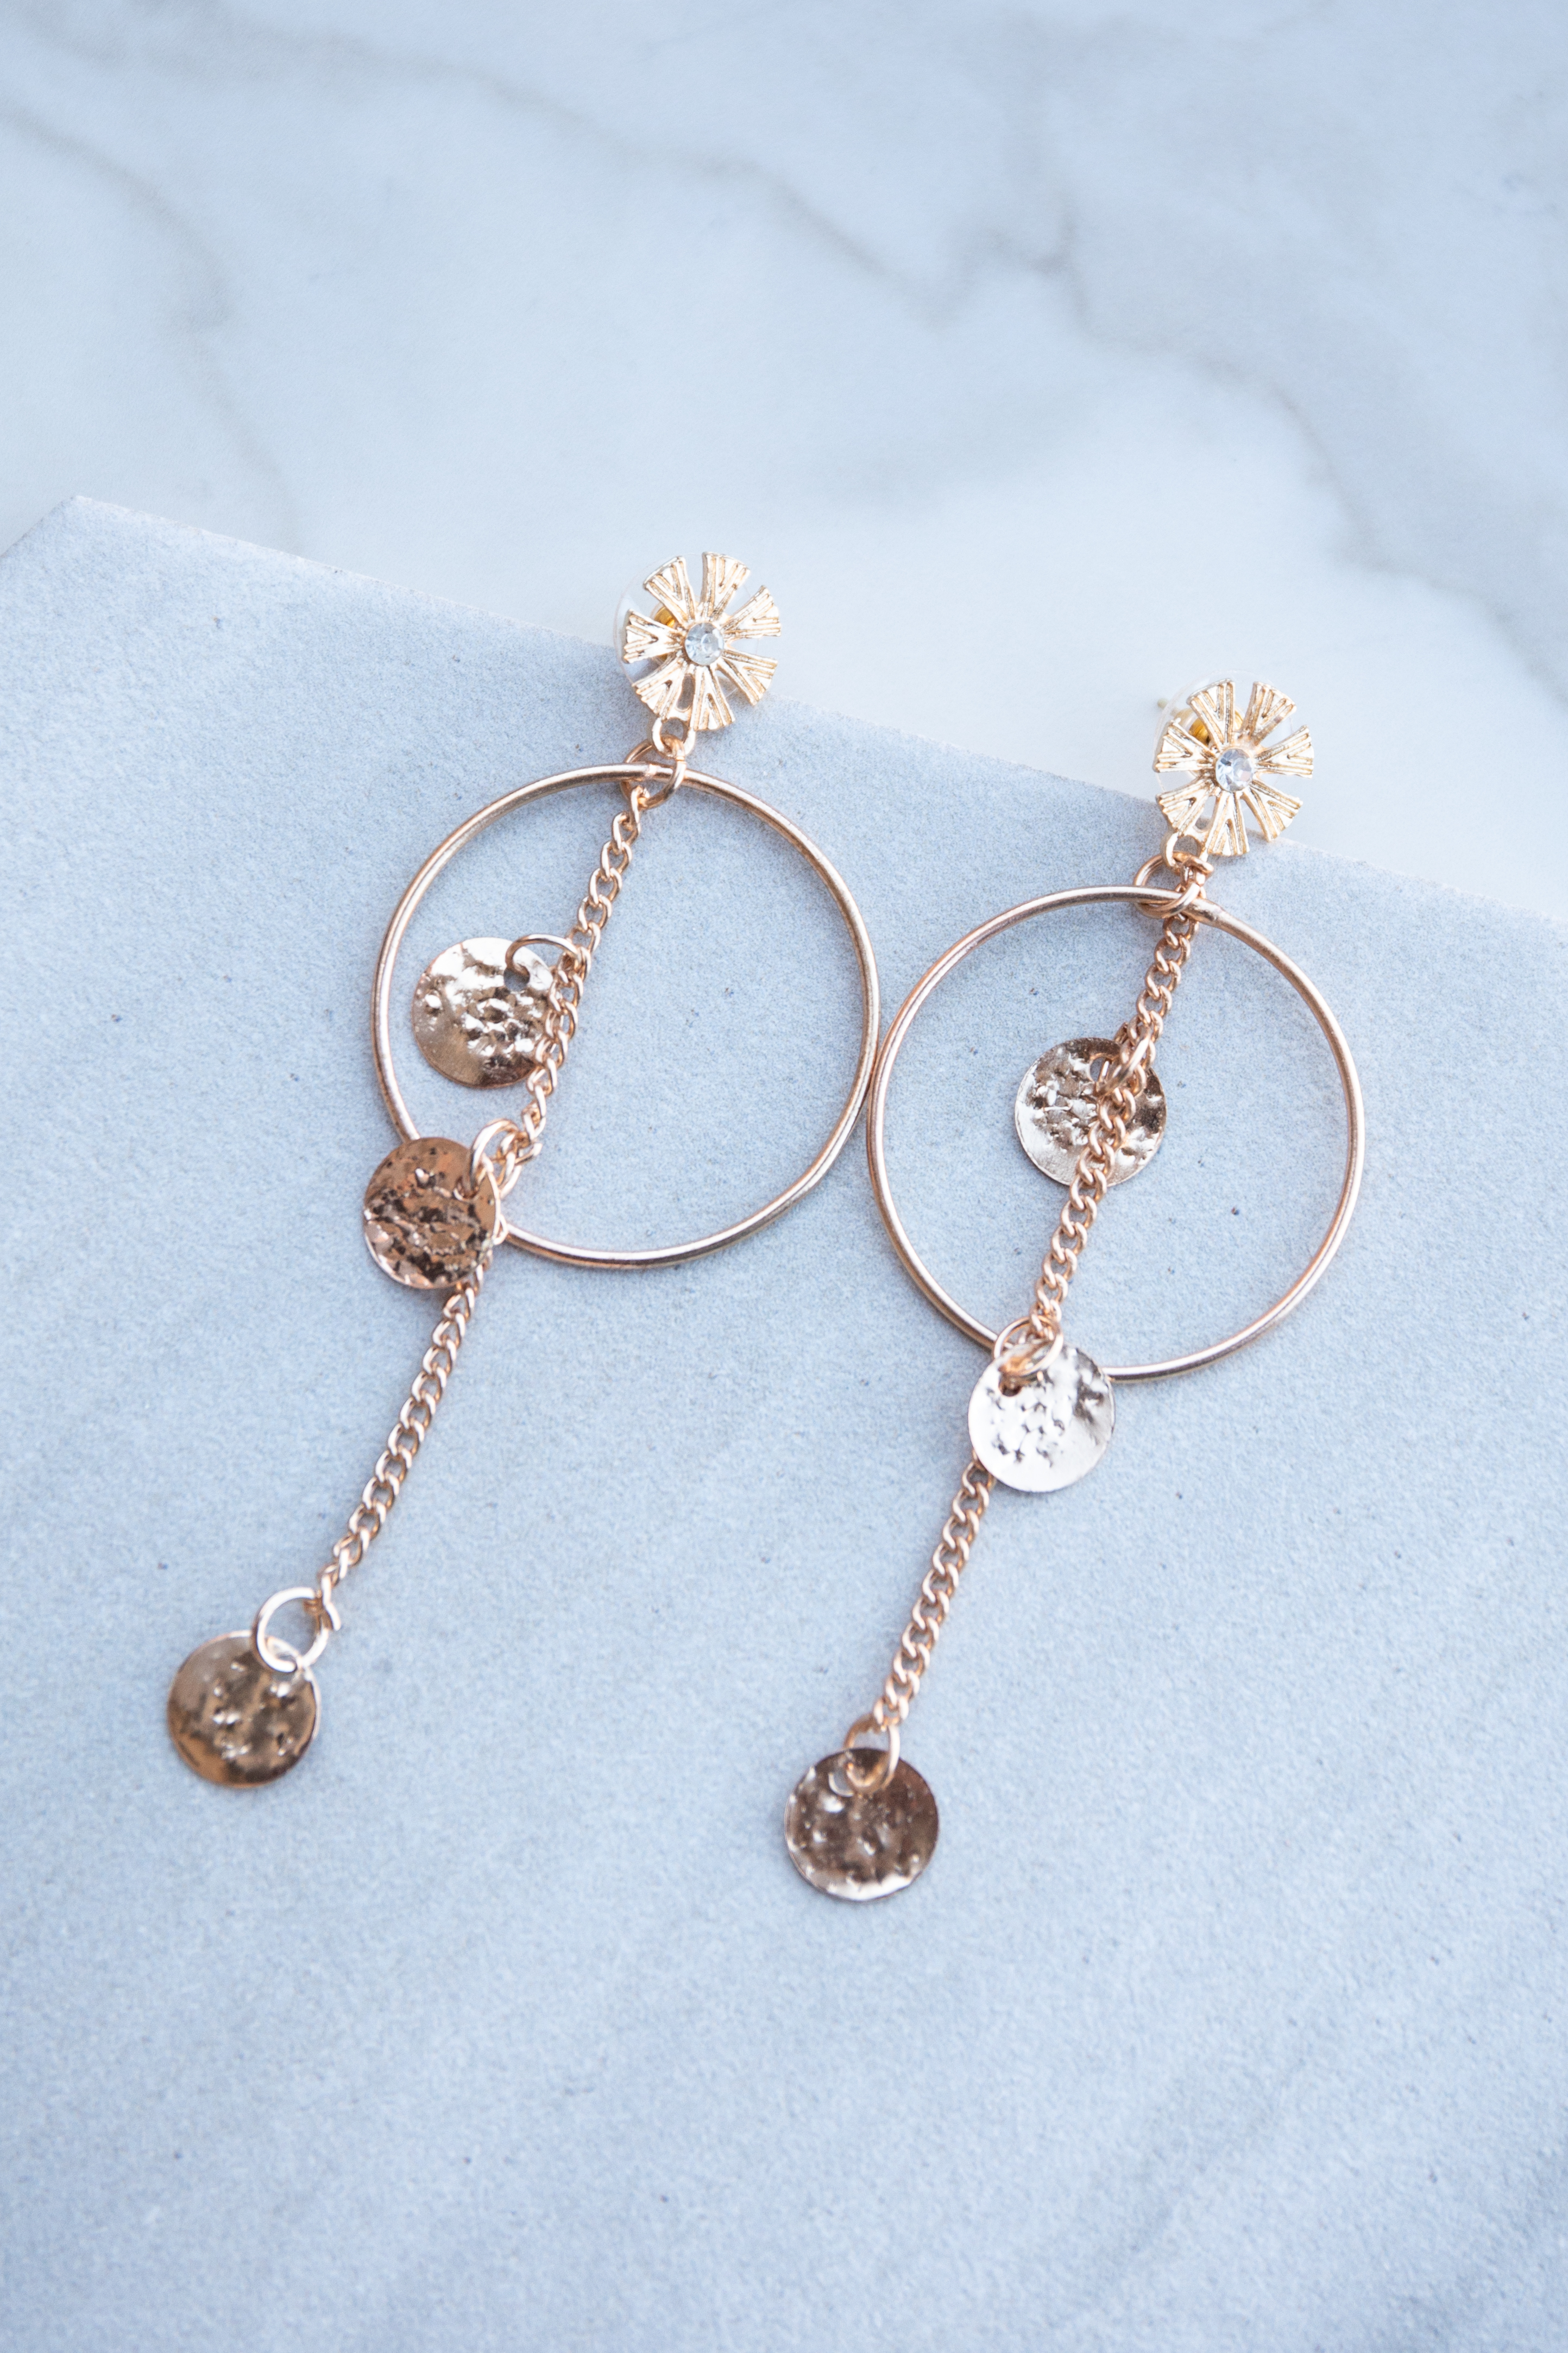 Rose Gold Hoop Earrings with Flower Stud and Coin Pendants